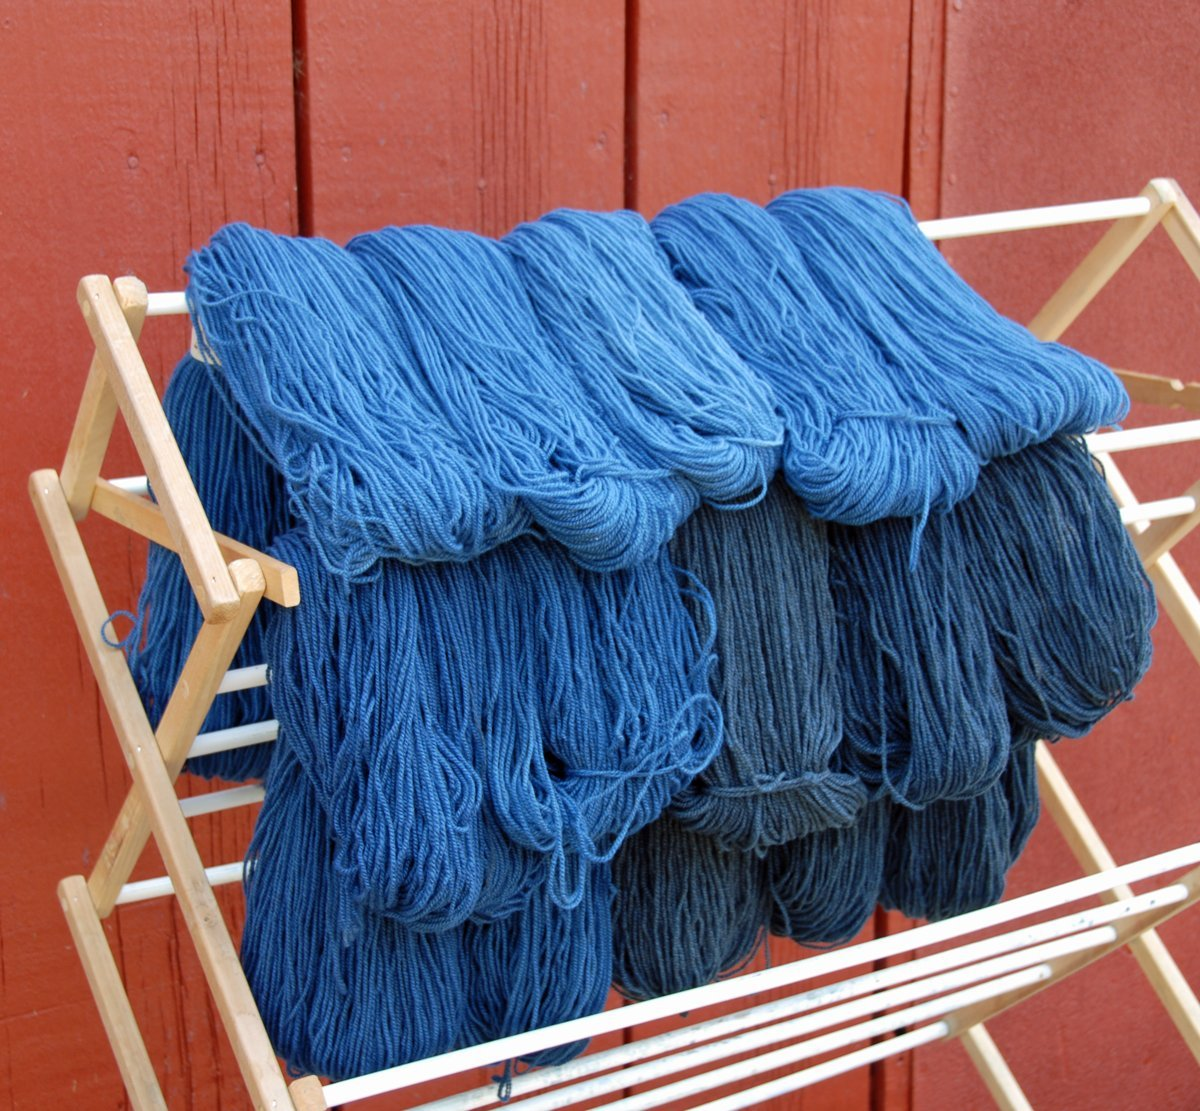 Yarn drying just after being dyed